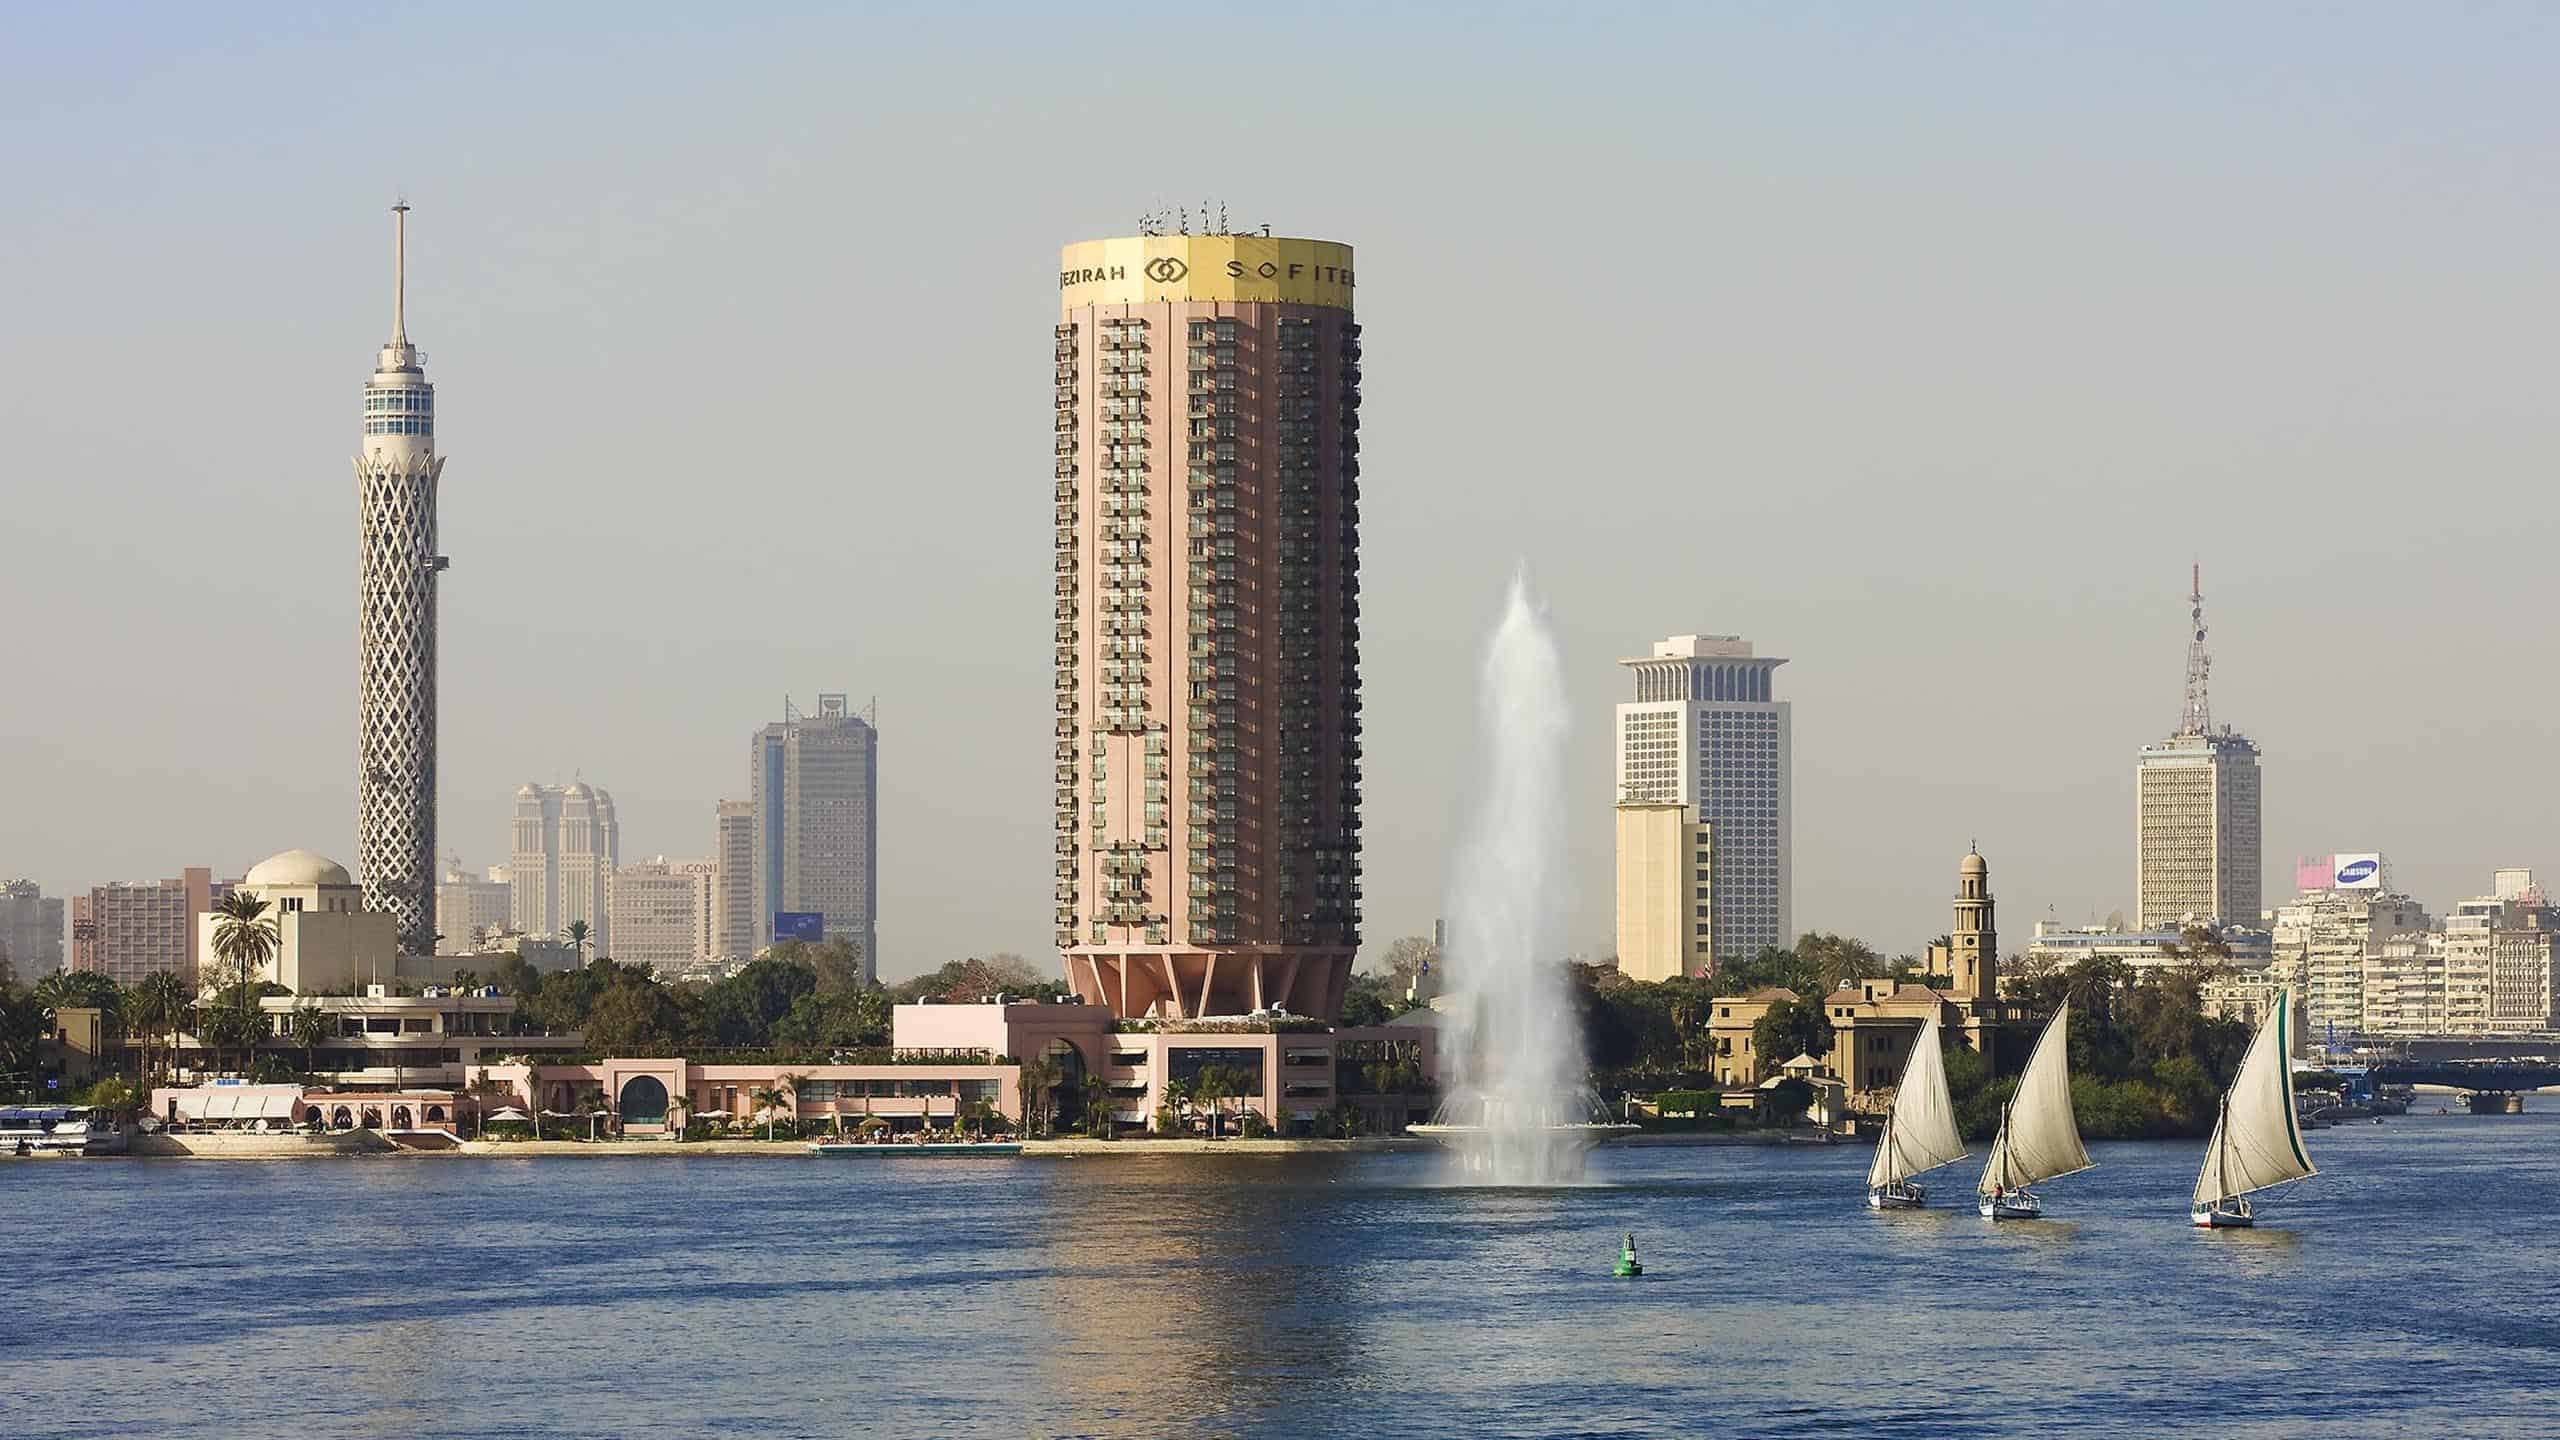 Sofitel El Gezirah one of most famous hotels in Cairo - Photo Credit Sofitel